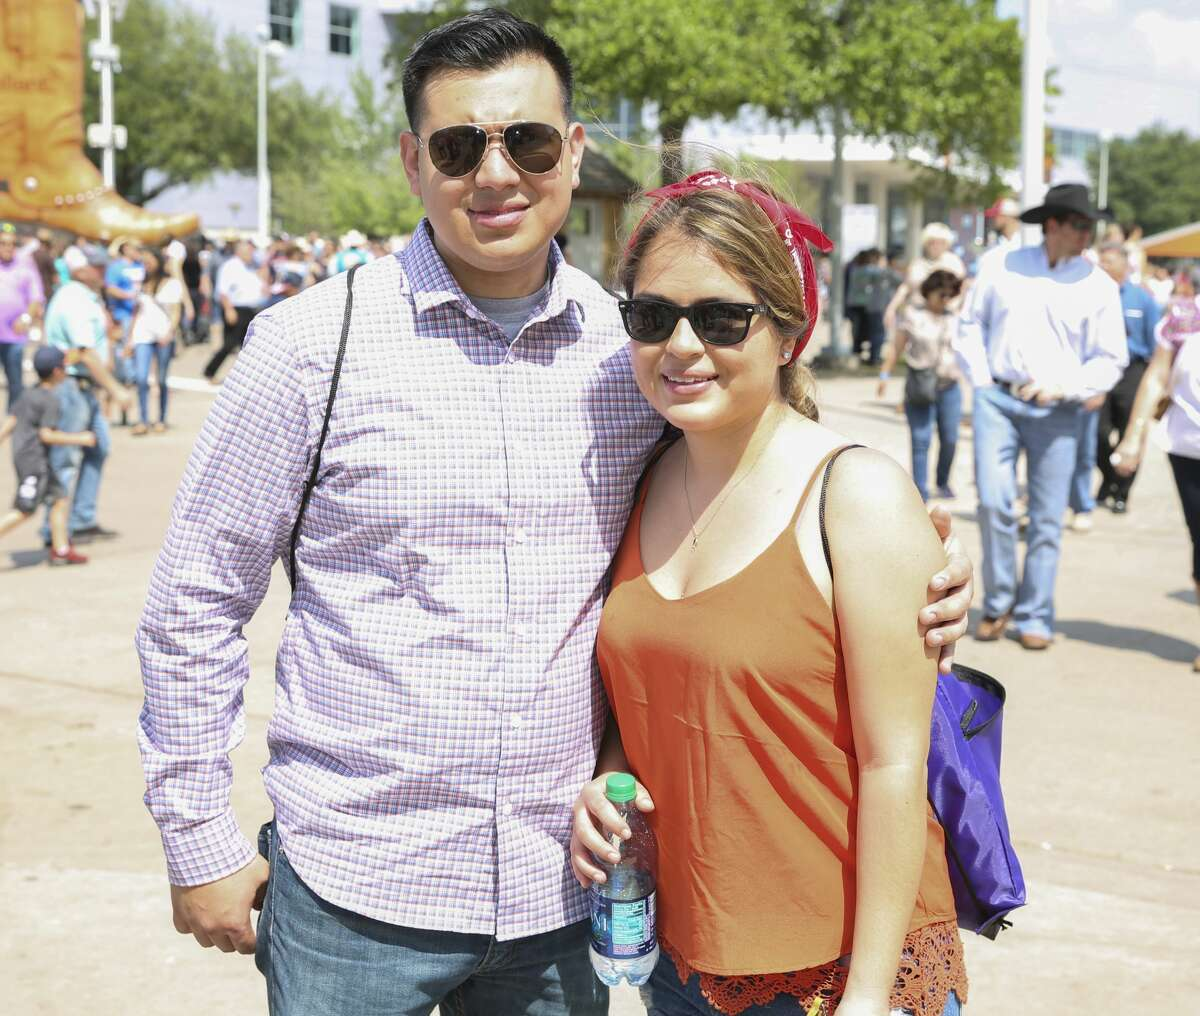 Fans of Houston Livestock Show and Rodeo and Zac Brown Band pose for a photo Sunday, March 26, 2017, in Houston. ( Yi-Chin Lee / Houston Chronicle )